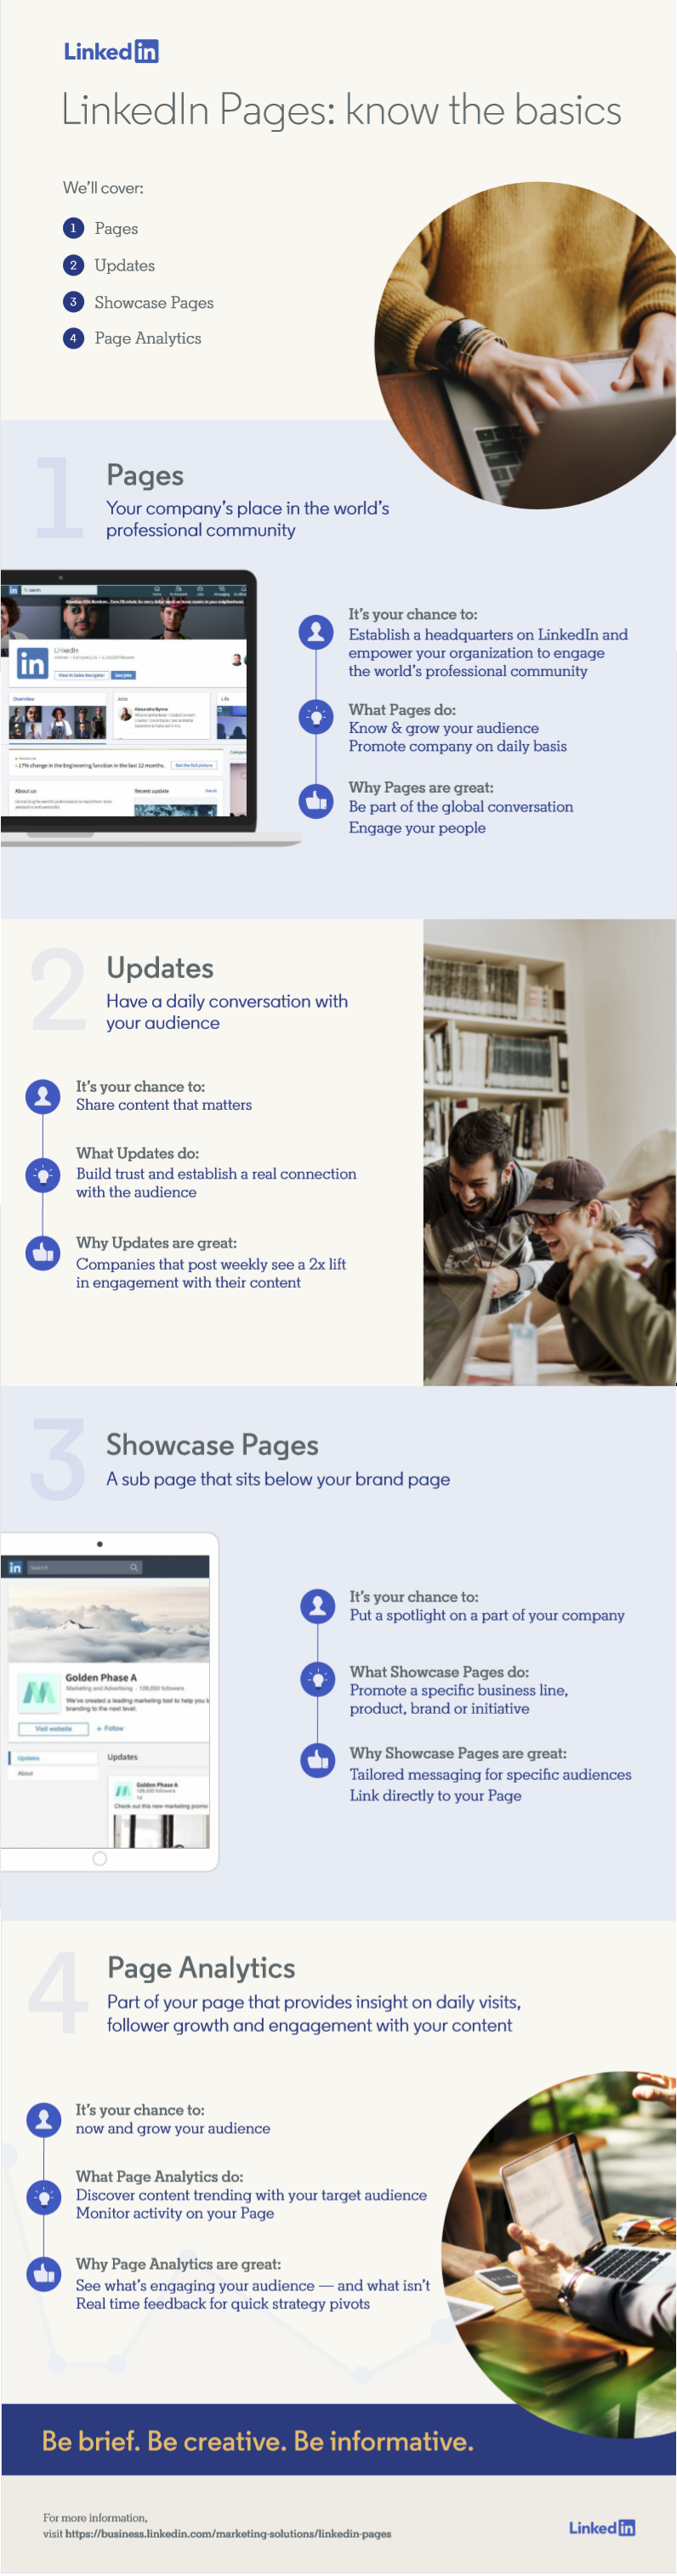 LinkedIn Pages Know the Basics [Infographic]